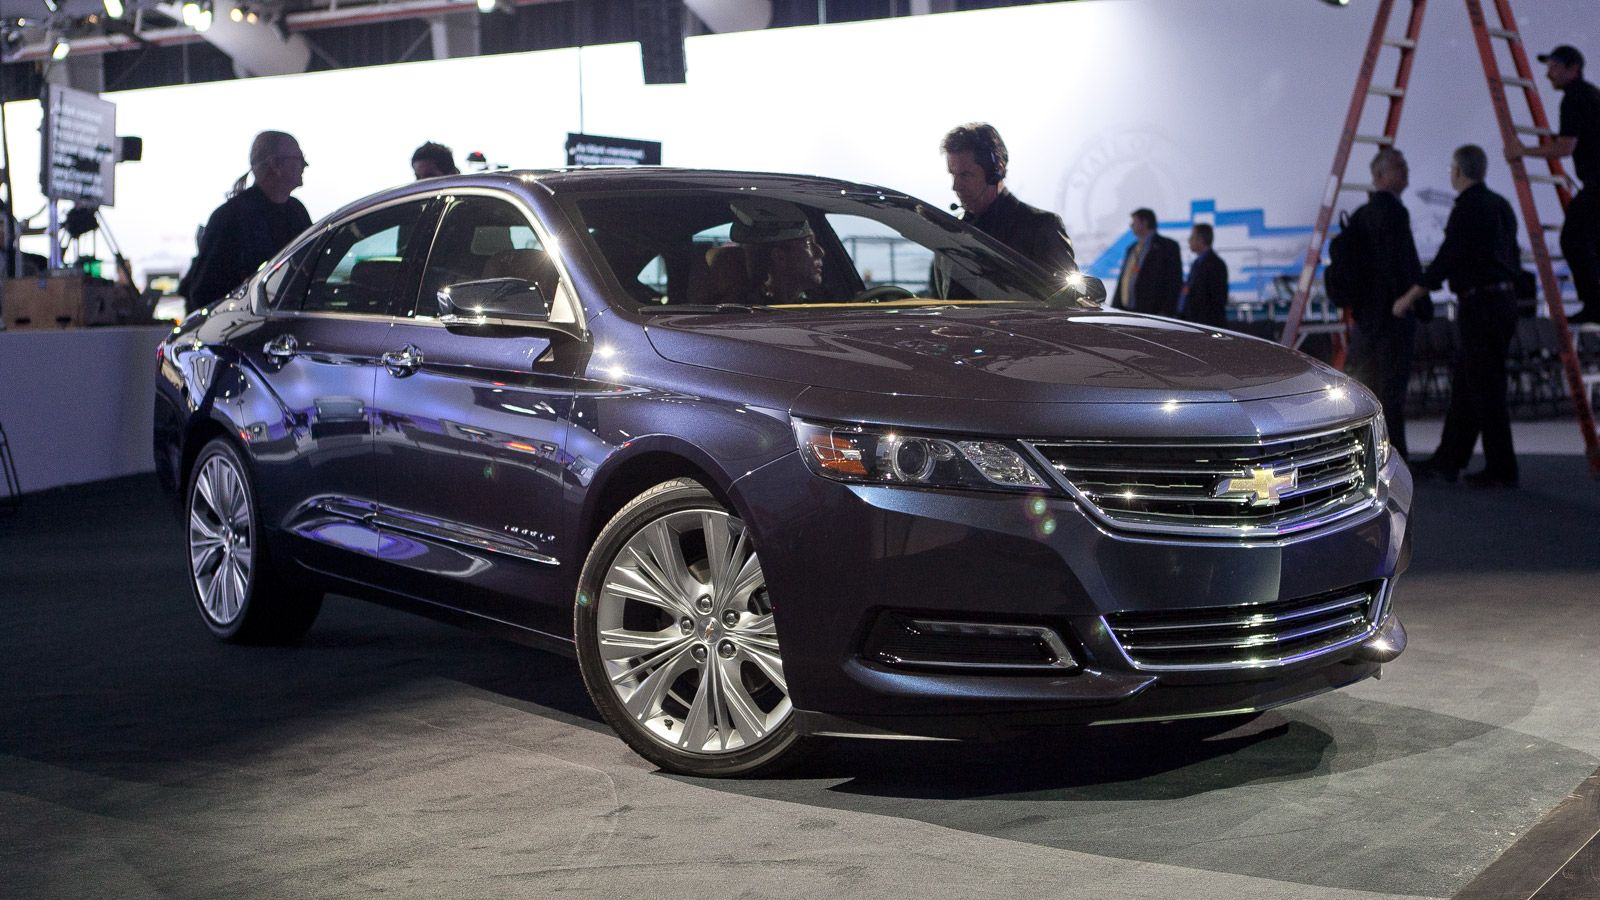 2015 chevrolet impala station wagon twin renderings explore the speculative idea station wagon impalas and chevrolet impala